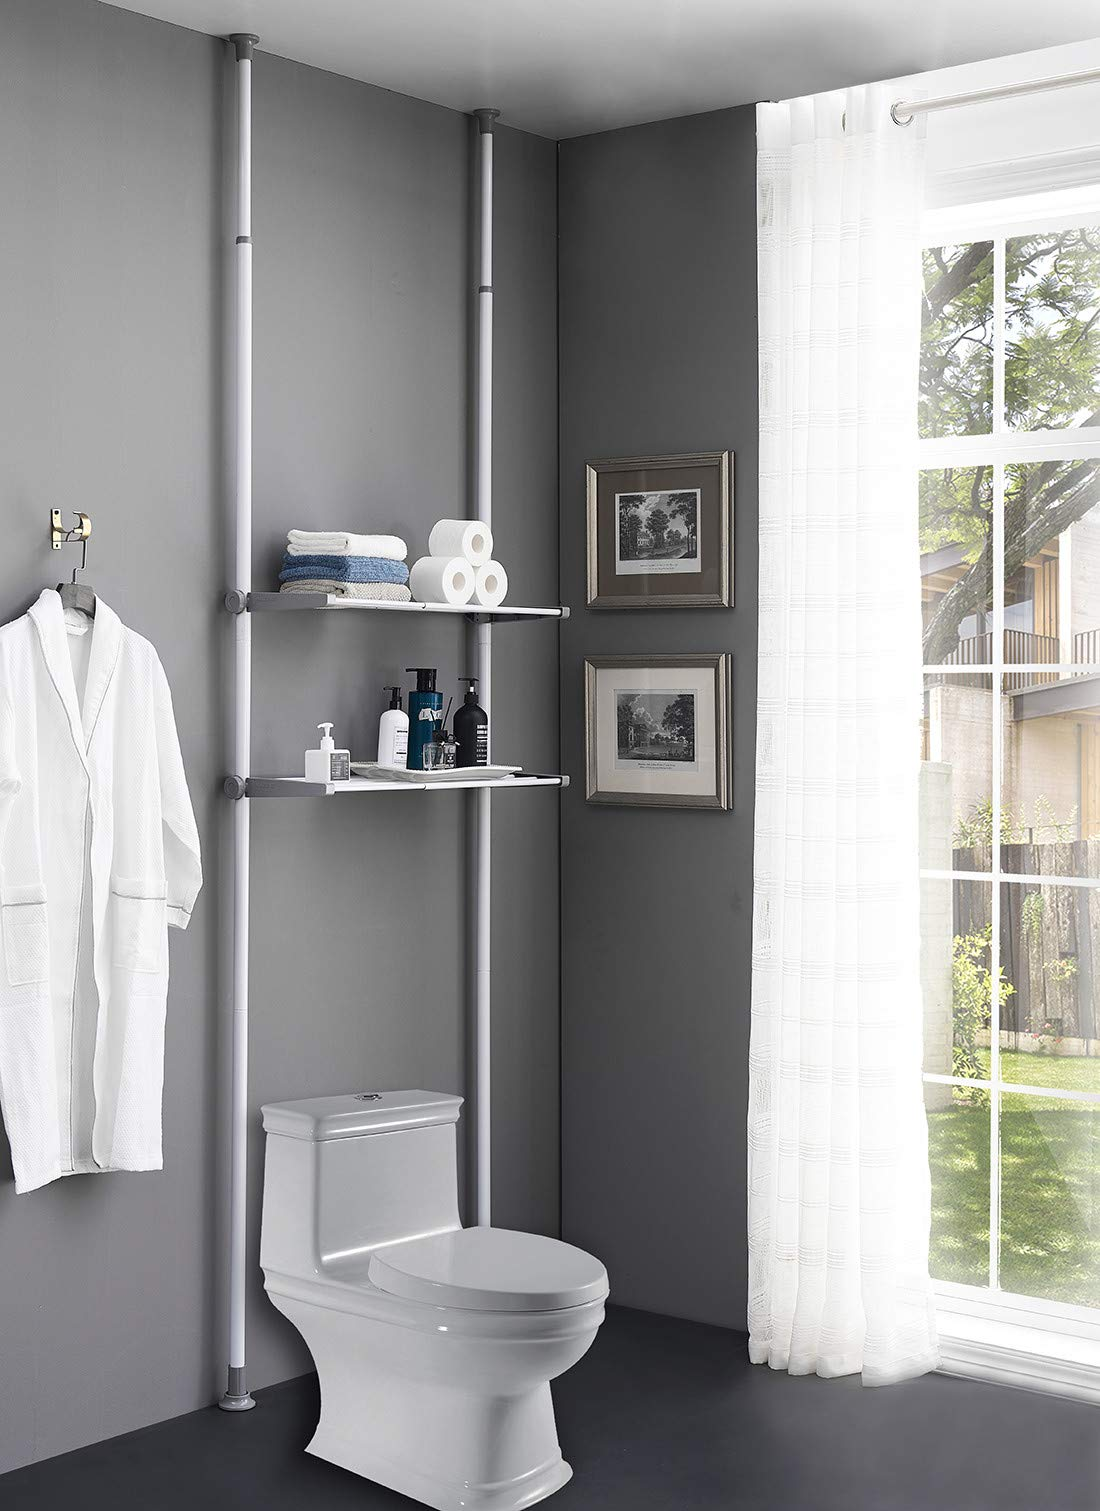 ALLZONE Bathroom Organizer, Over The Toilet Storage Rack, Over The Washer Shelf for Laundry Room, No Drilling, Extremely Easy to Assemble, Height and Width Adjustable with Ample Space by ALLZONE